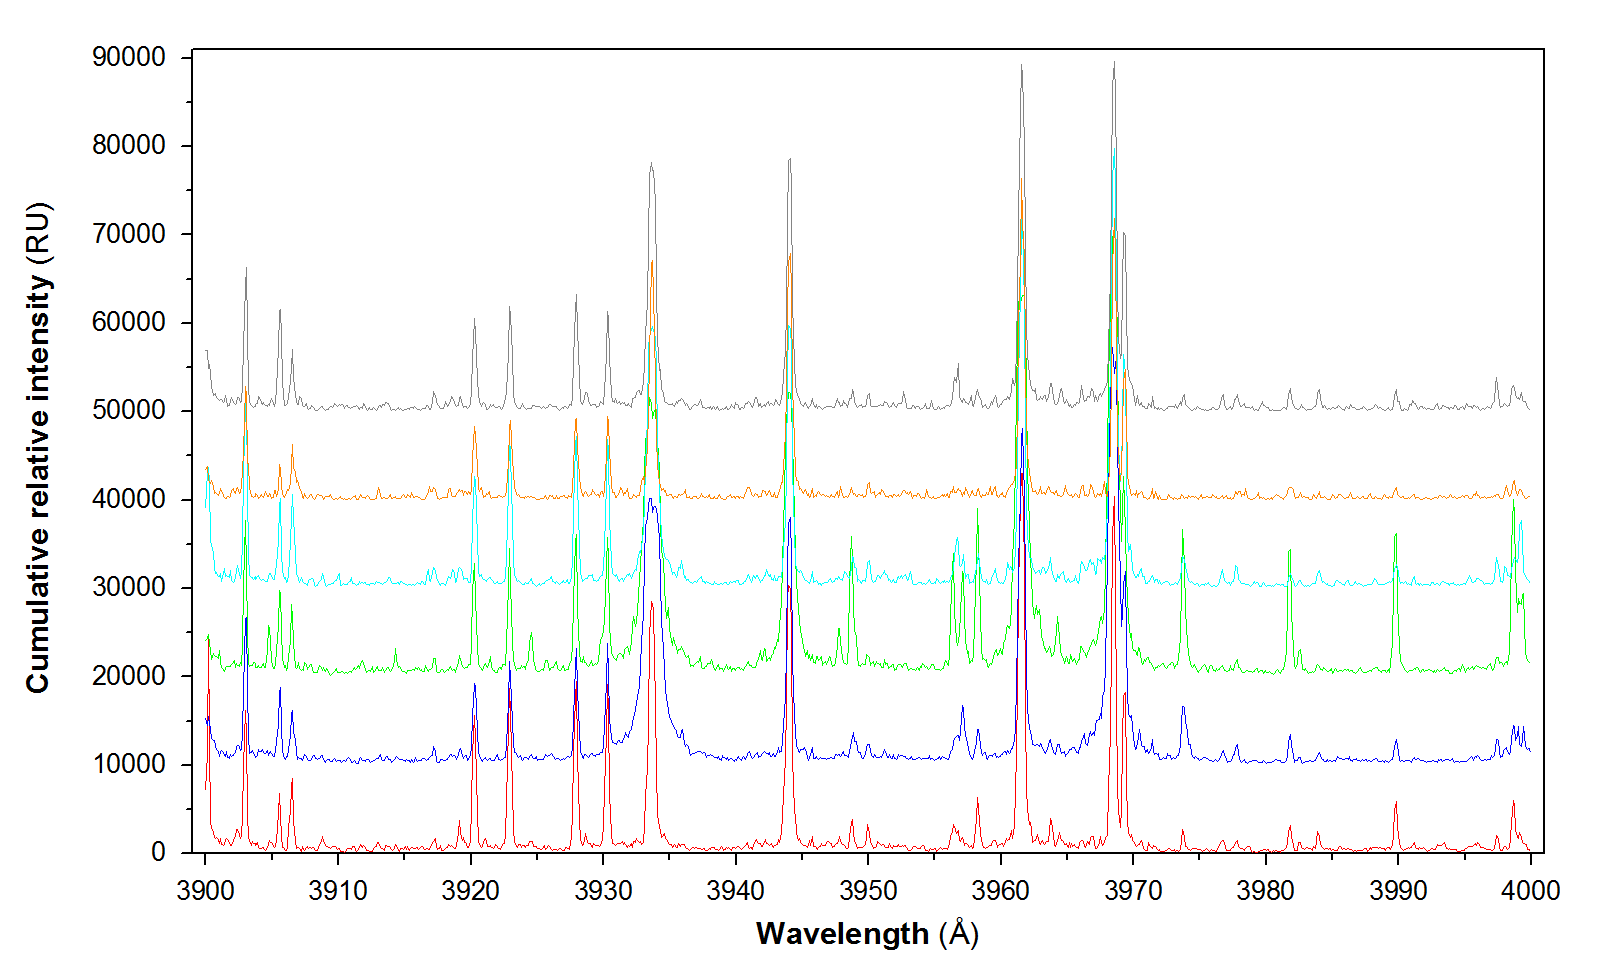 Sample analysis of meteoroid plasma using Lambda Physik (ArF) excimer laser and high resolution Echelle spectrograph. Measurement in the range between 3900 and 4000 Å contains the following meteorite samples: Dhofar 1709 (LL ordinary chondrite, marked in red), Dhofar 1764 (CV carbonaceous chondrite, marked in blue), JAH 804 (HED eucrite, marked in green), JAH 815 (CO carbonaceous chondrite, marked in light blue), Porangaba (L ordinary chondrite, marked in orange), NWA 8212 (H ordinary chondrite, marked in grey).